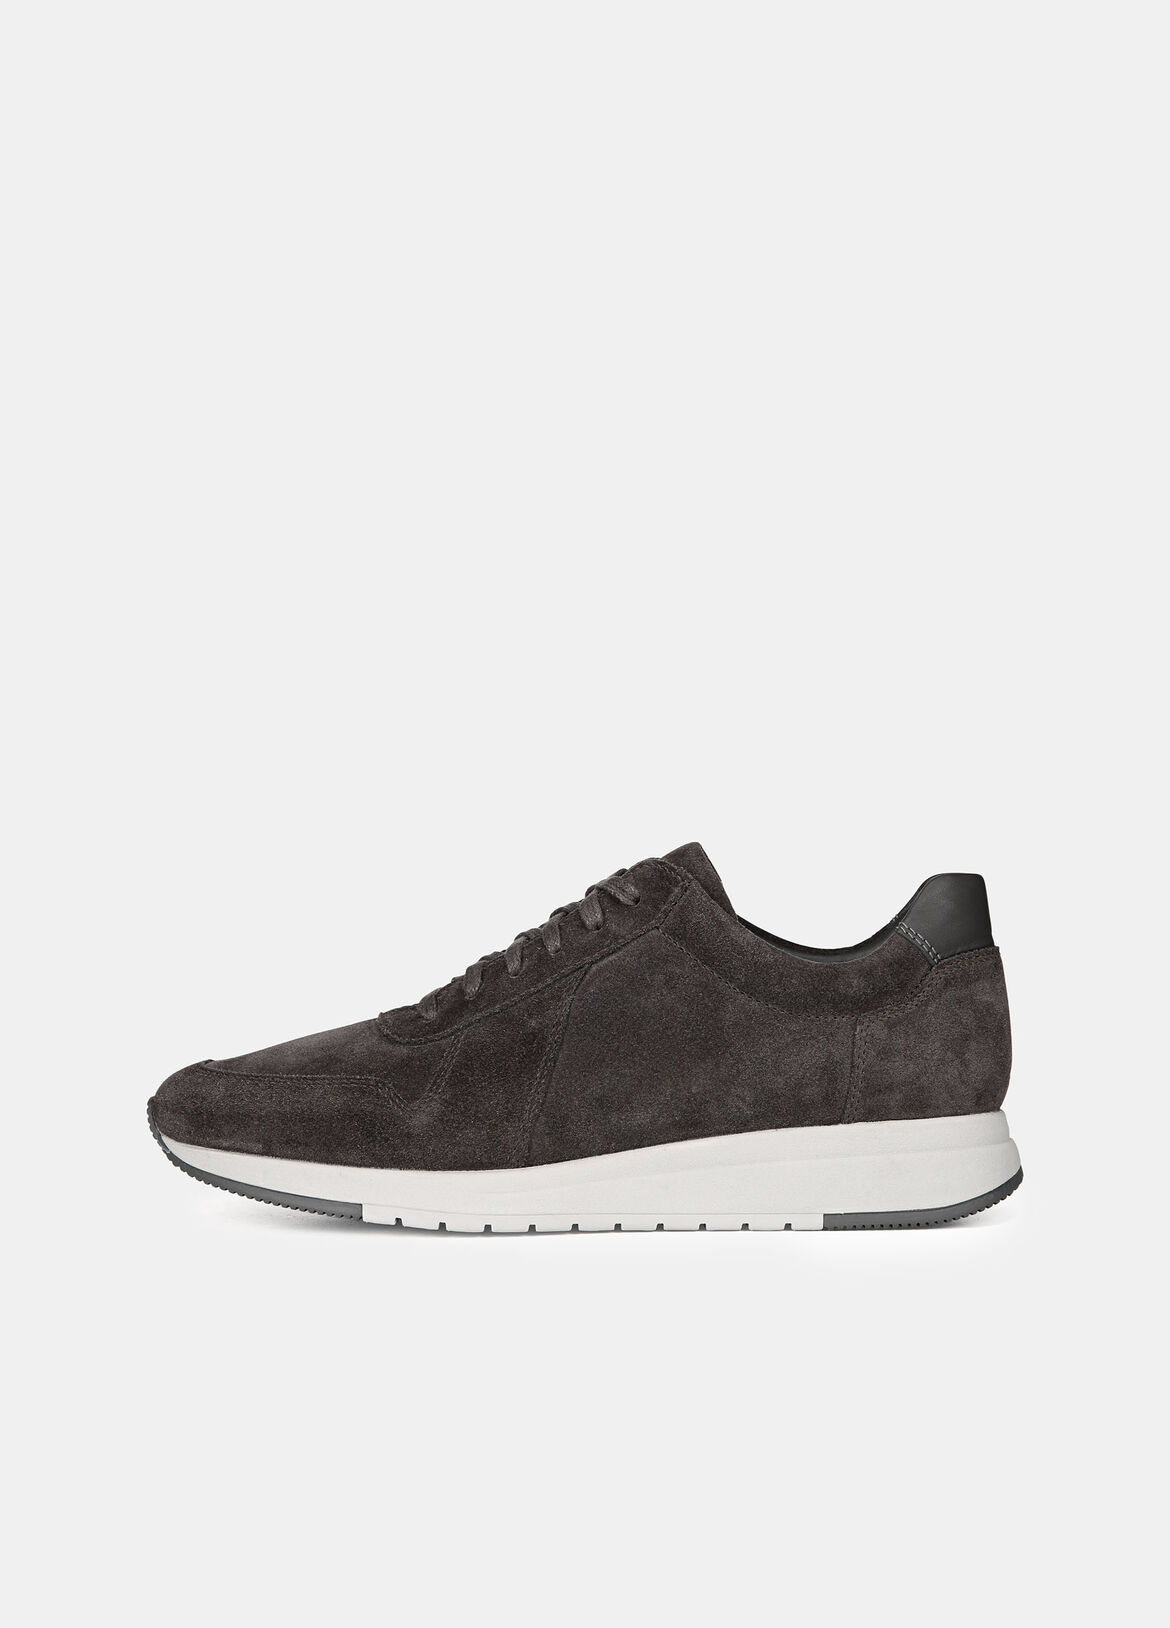 These Pryor sneakers are made from butter-soft suede, set on durable rubber soles. Key details include paneling and a smooth leather heel tab.